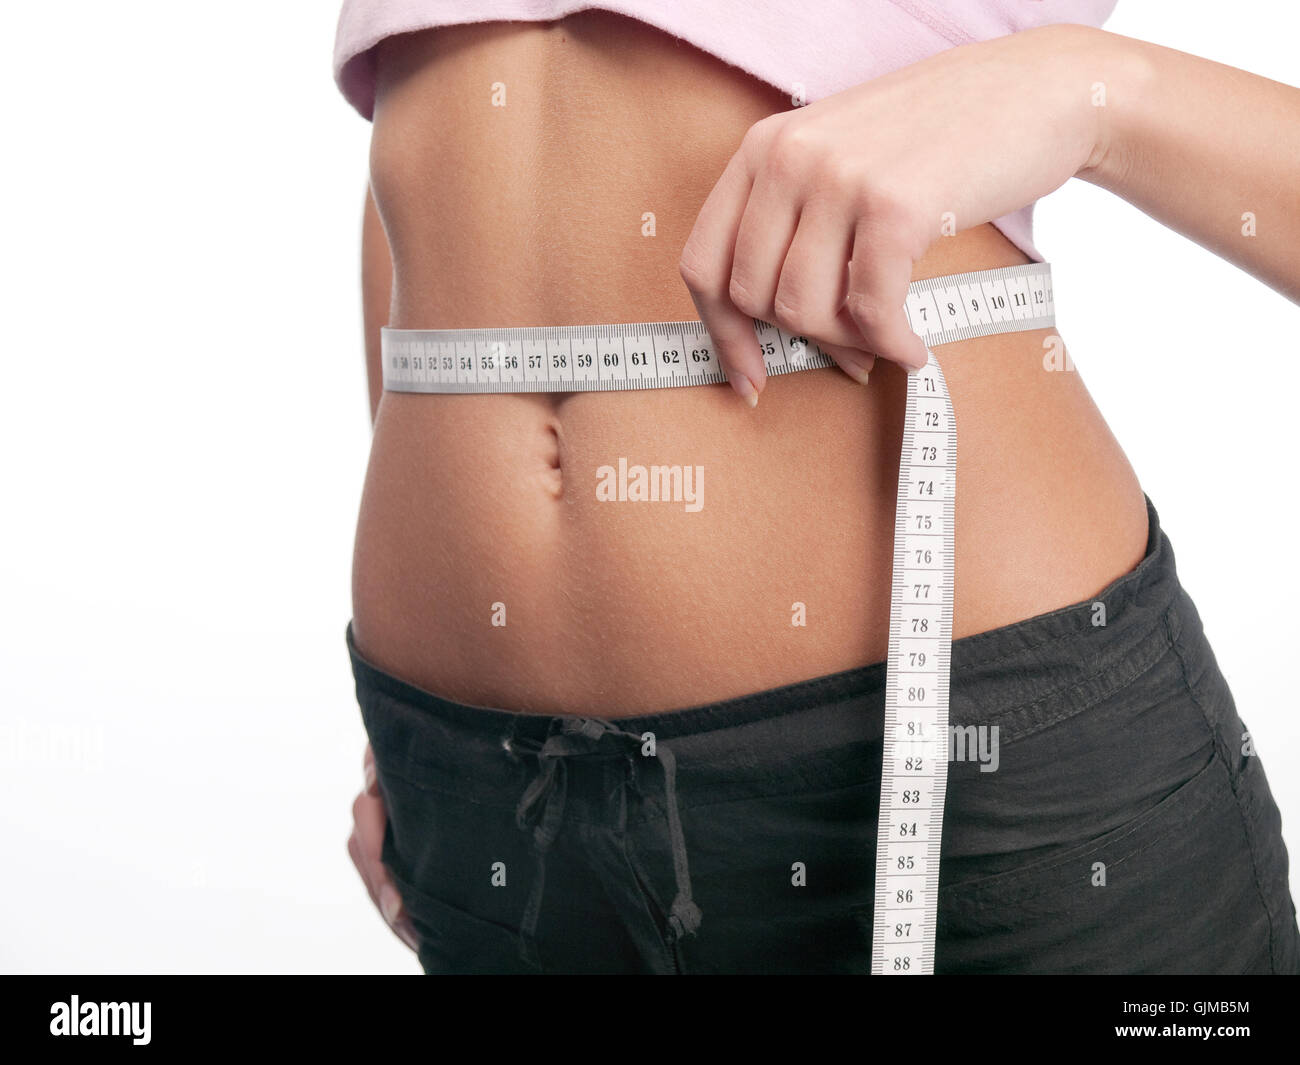 Slim and fit - Stock Image